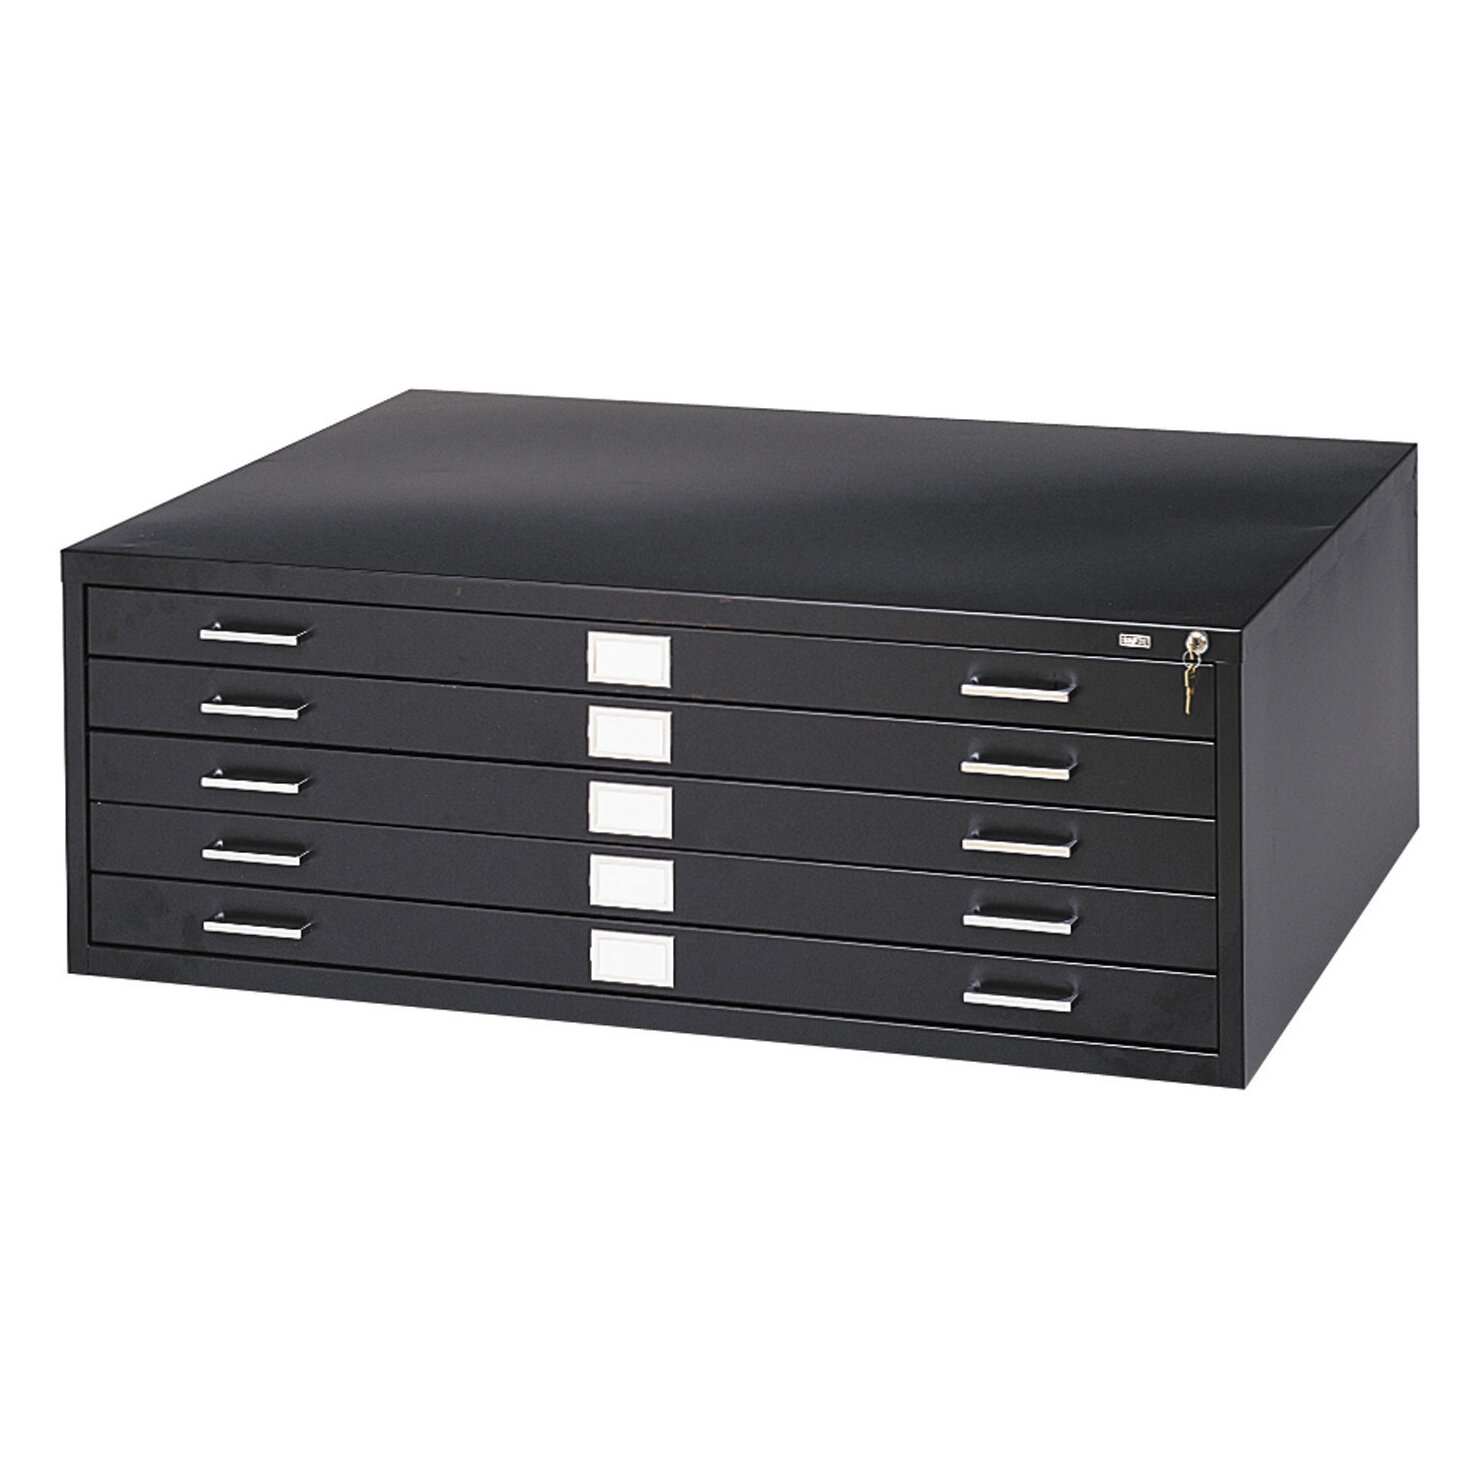 Beau Safco Products Five Drawer Flat File Filing Cabinet | Wayfair